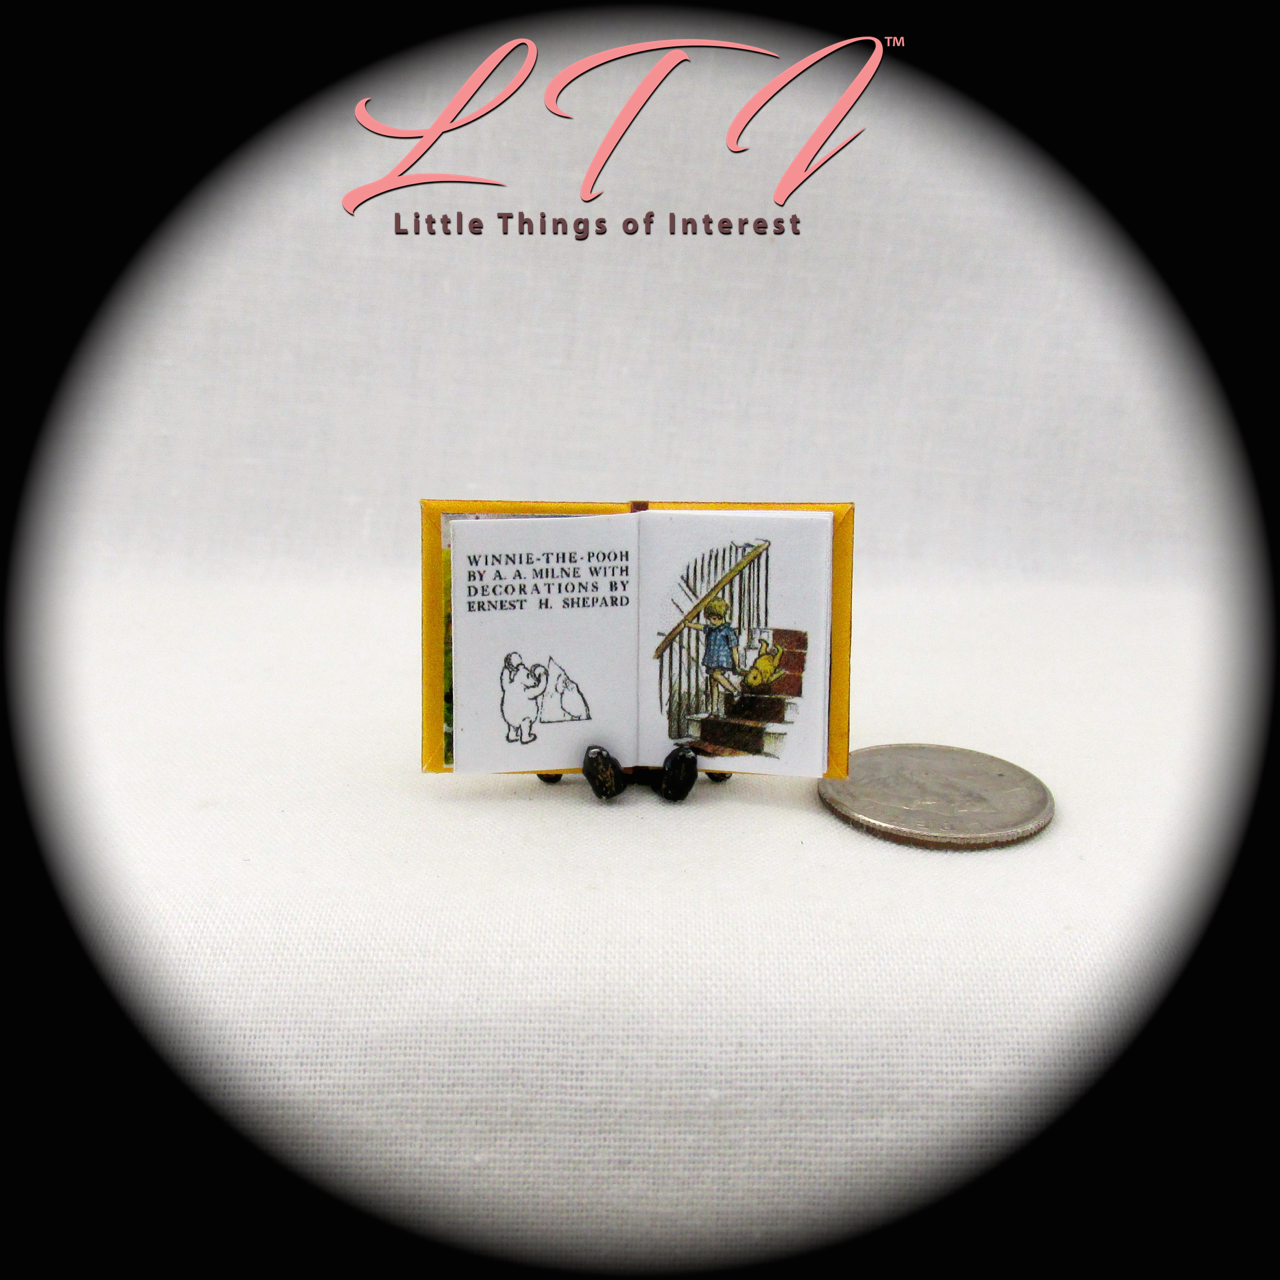 WINNIE THE POOH Miniature Book Dollhouse 1:12 Scale Illustrated Readable Book 5